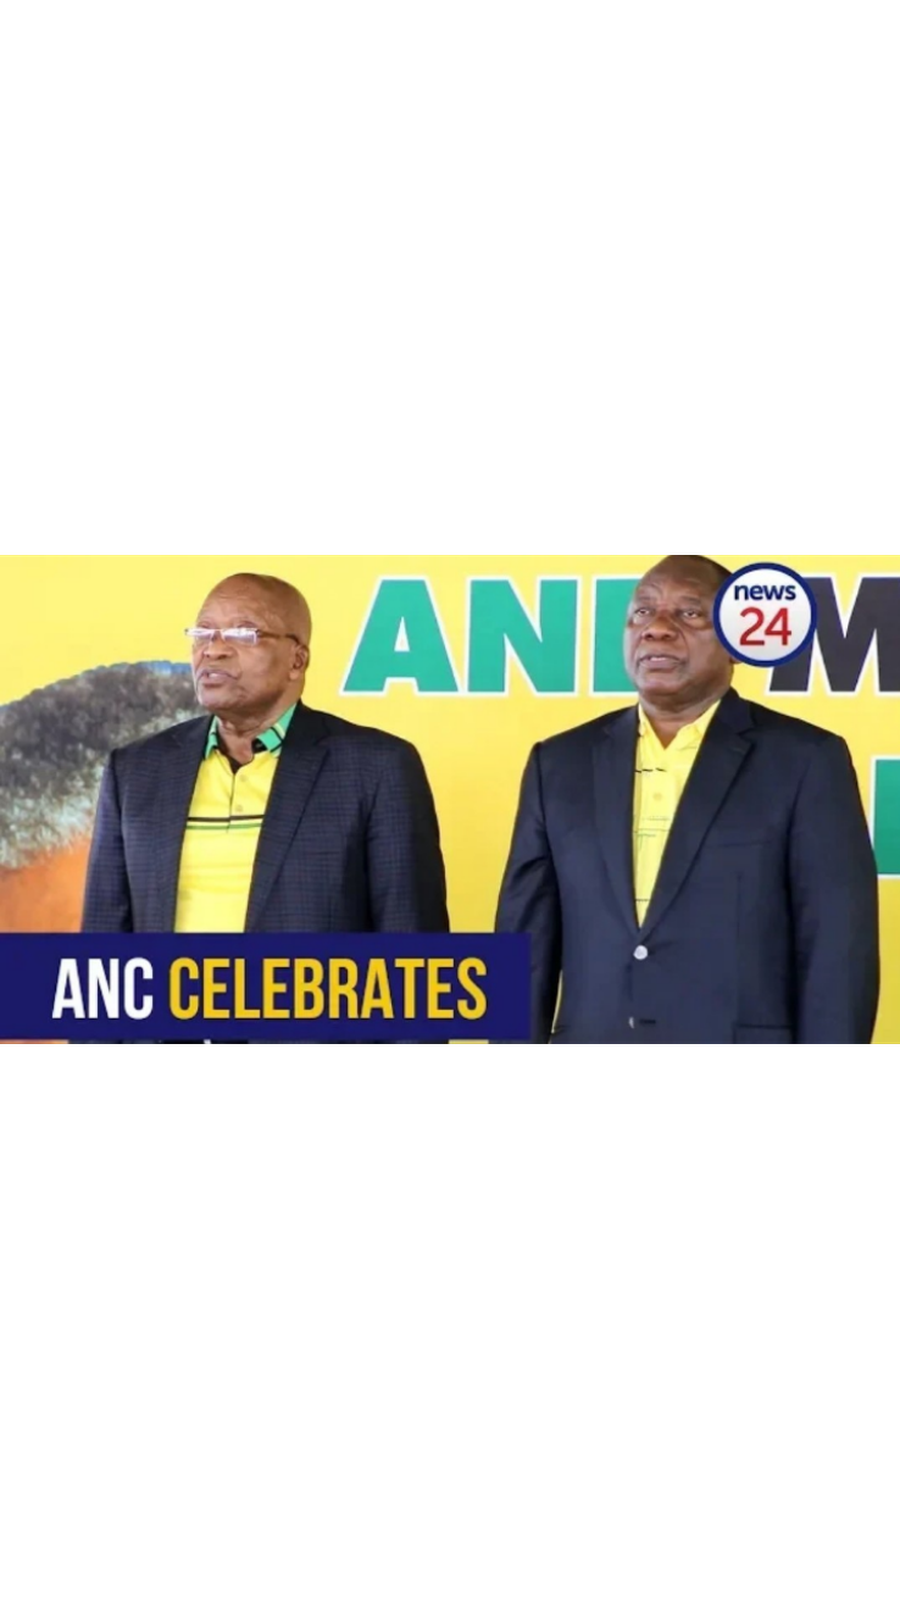 WATCH: 'We are united' - ANC leaders as it marks 107 years